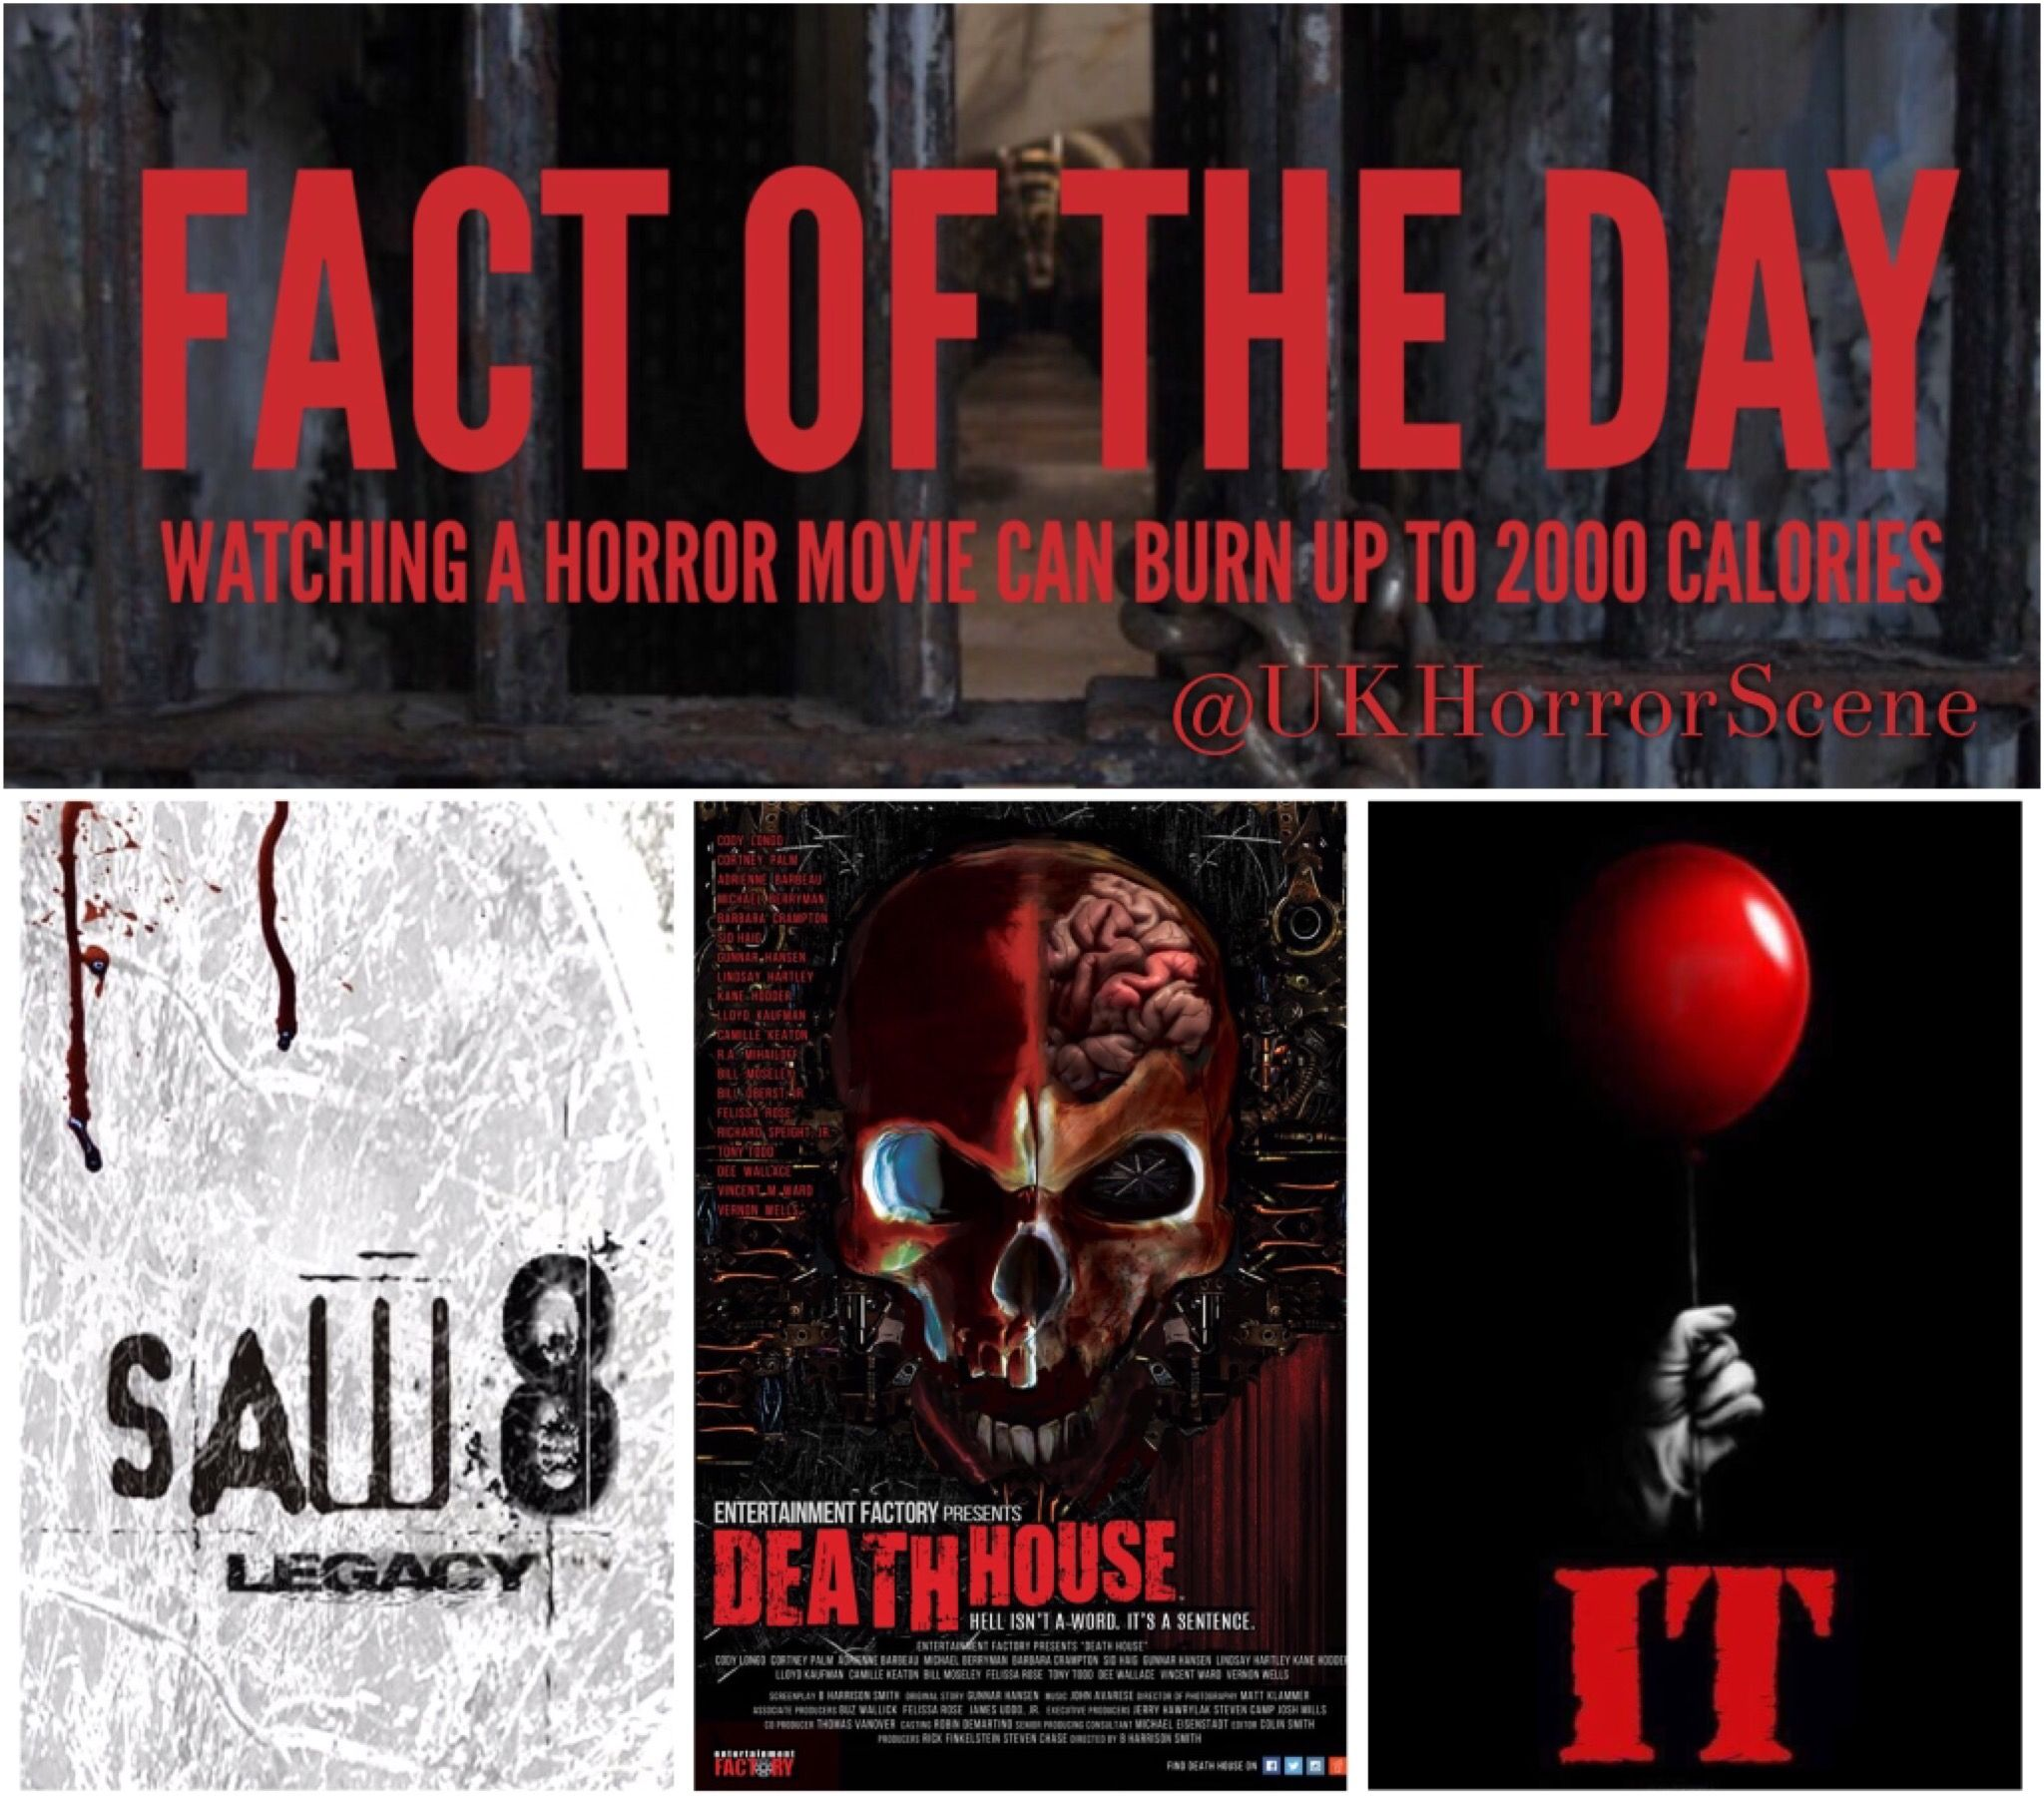 ‪#WorldPhysicalActivityDay‬  ‪2017 is a good year to start training‬  ‪@DeathHouseMovie ‬ ‪#DeathHouse‬  ‪@SAW_FILMS‬ ‪#SawLegacy‬  ‪@ITMovieOfficial‬ ‪#IT‬  #HorrorUnited #Horror #SciFi #Action #IconsOfHorror #Jigsaw #5Evils #Pennywise #StephenKing #Saw #DeathHouseMovie #StephenKingsIt